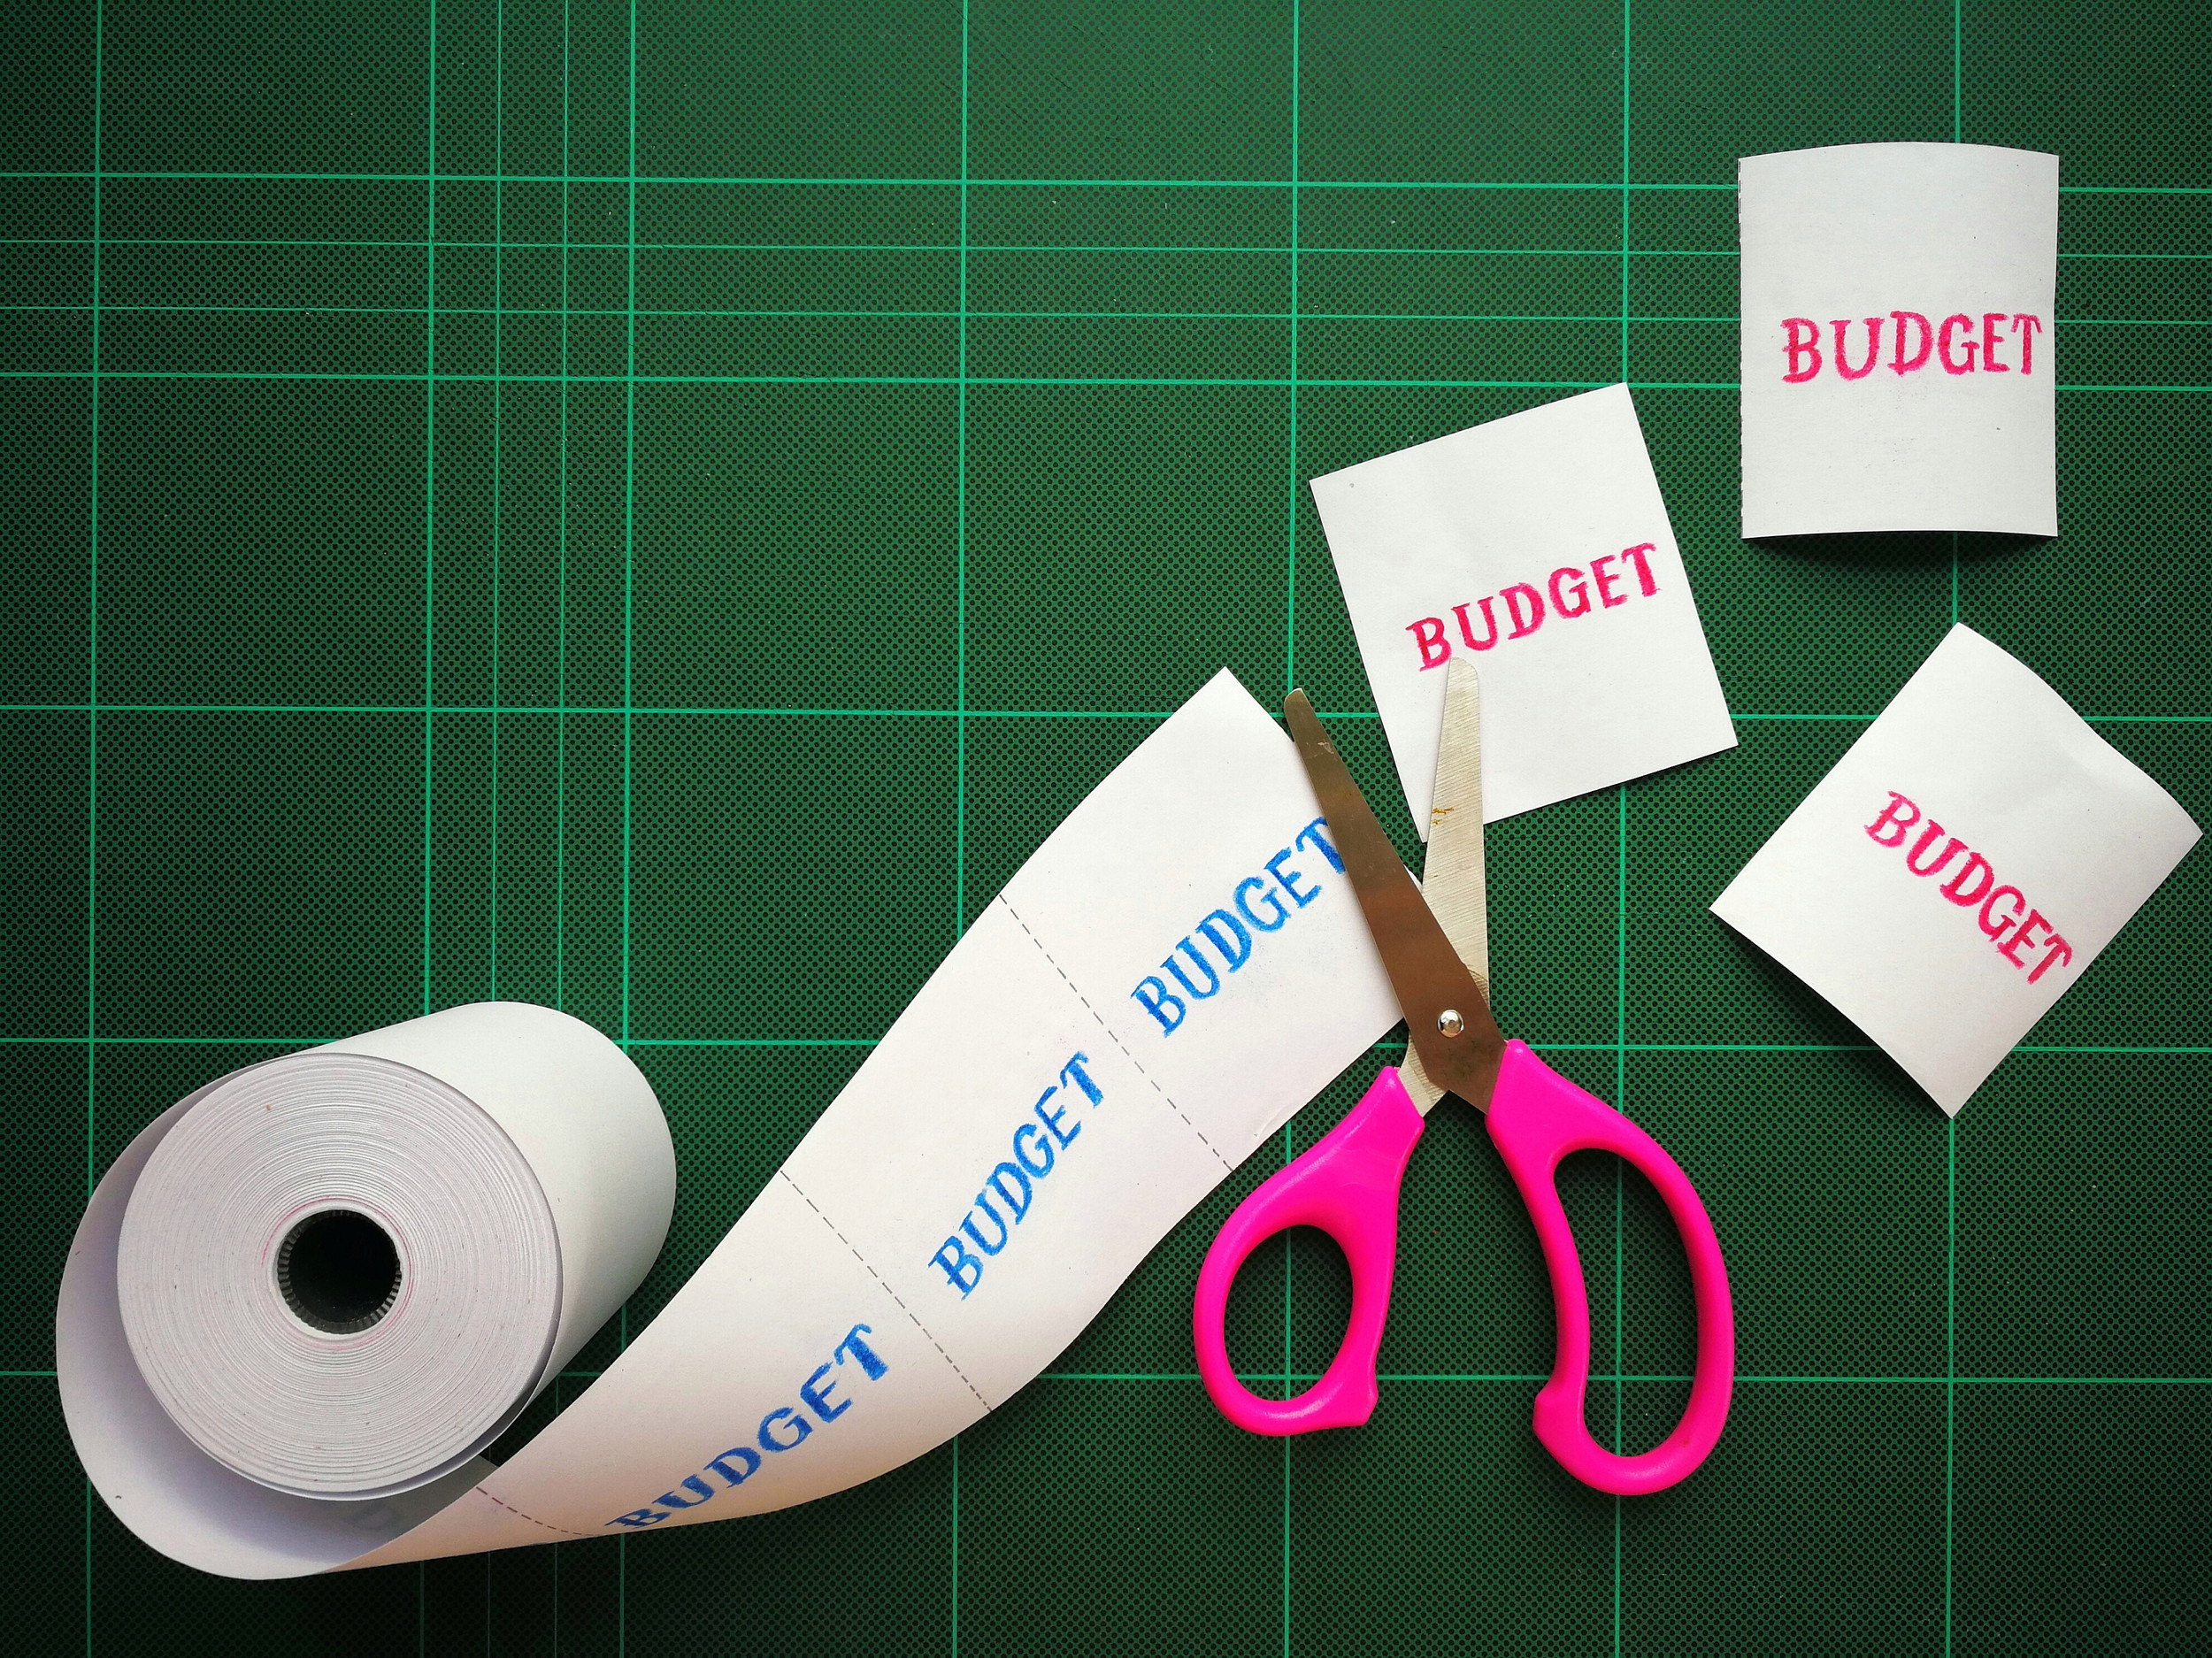 Need help with your budget? Try a weekly budget